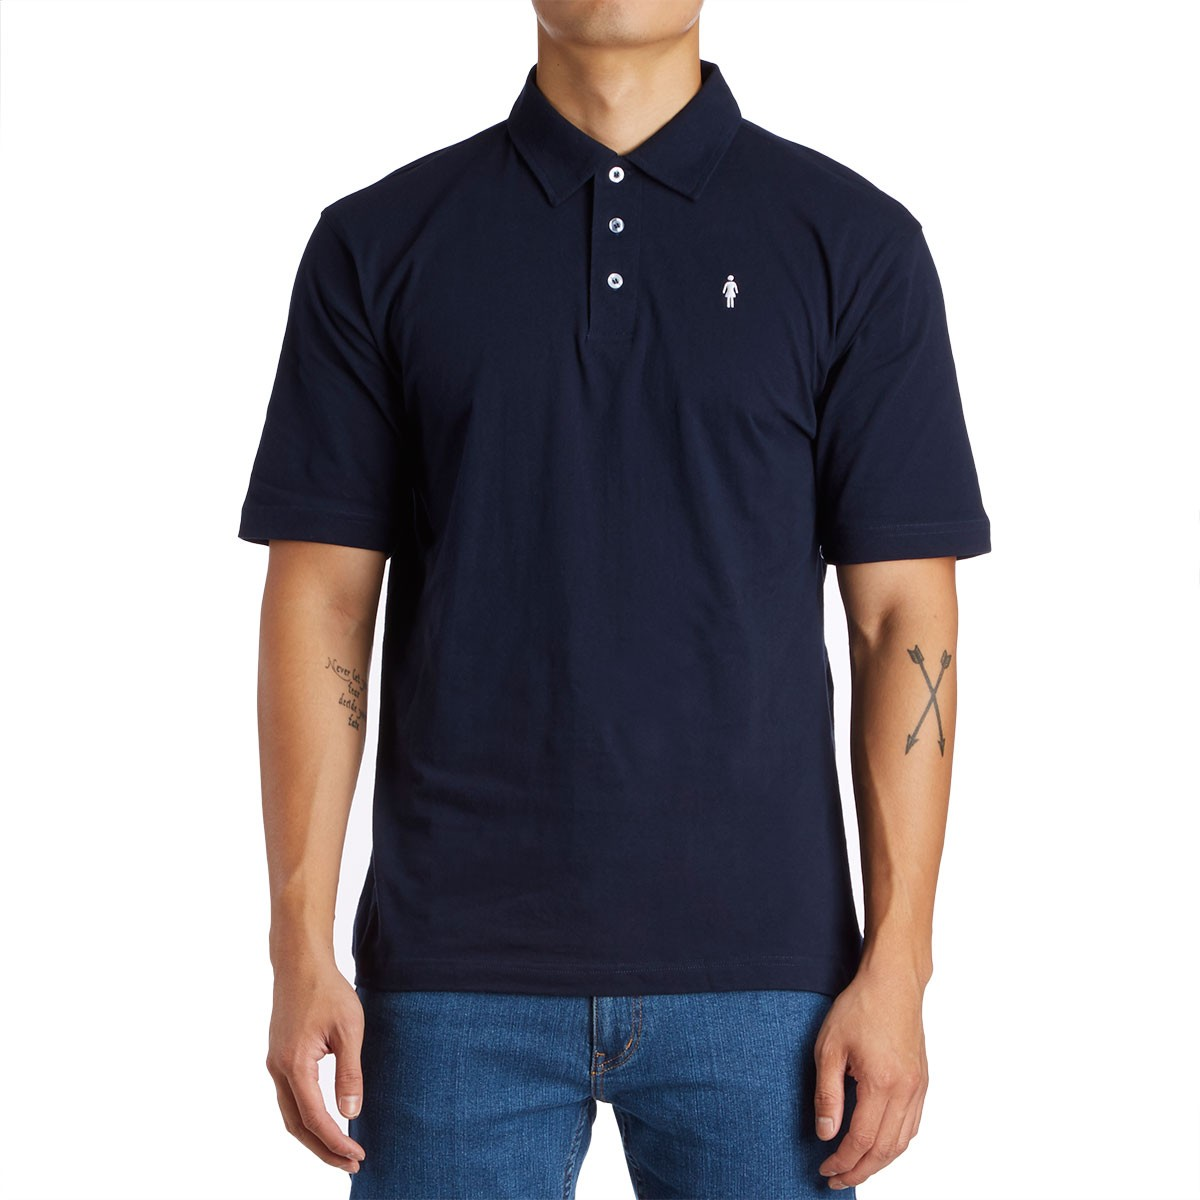 Girl Og Embroidered Polo Shirt Navy